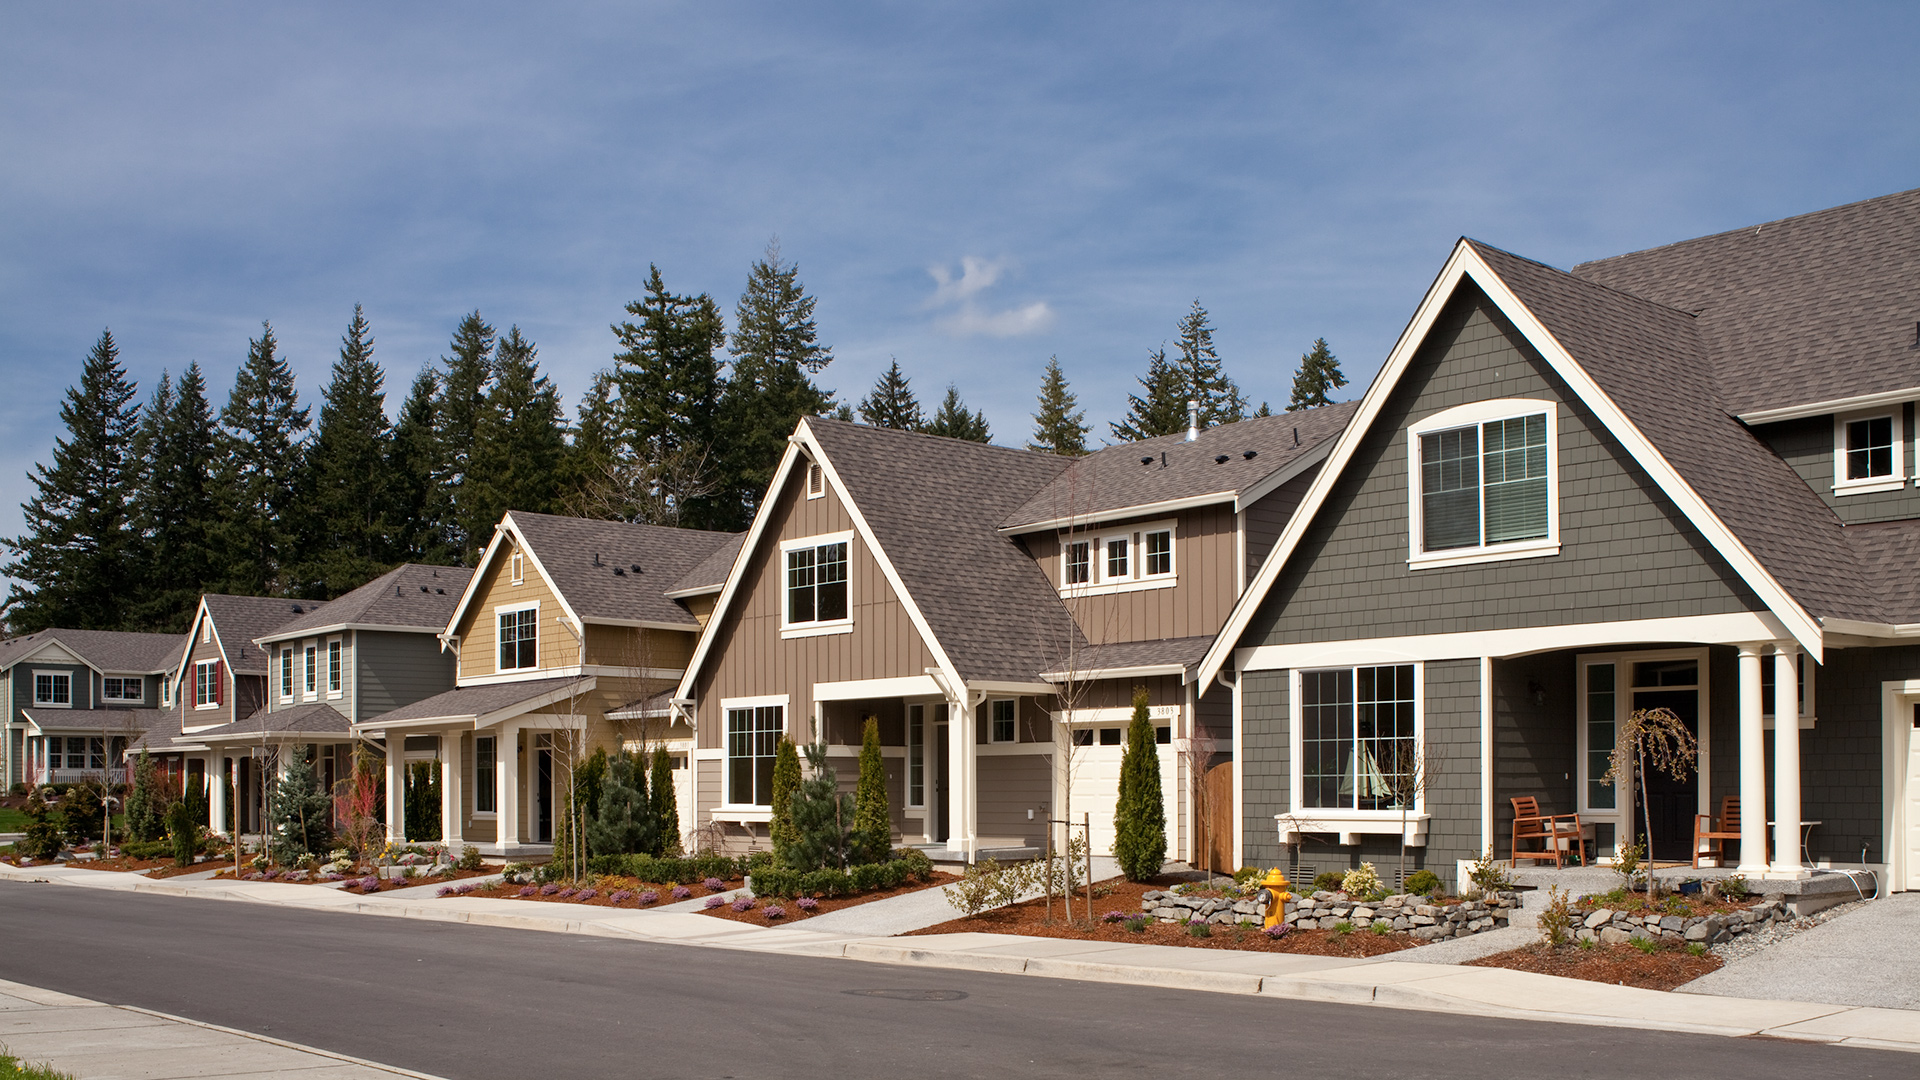 New Homes For Sale In Mill Creek Wa